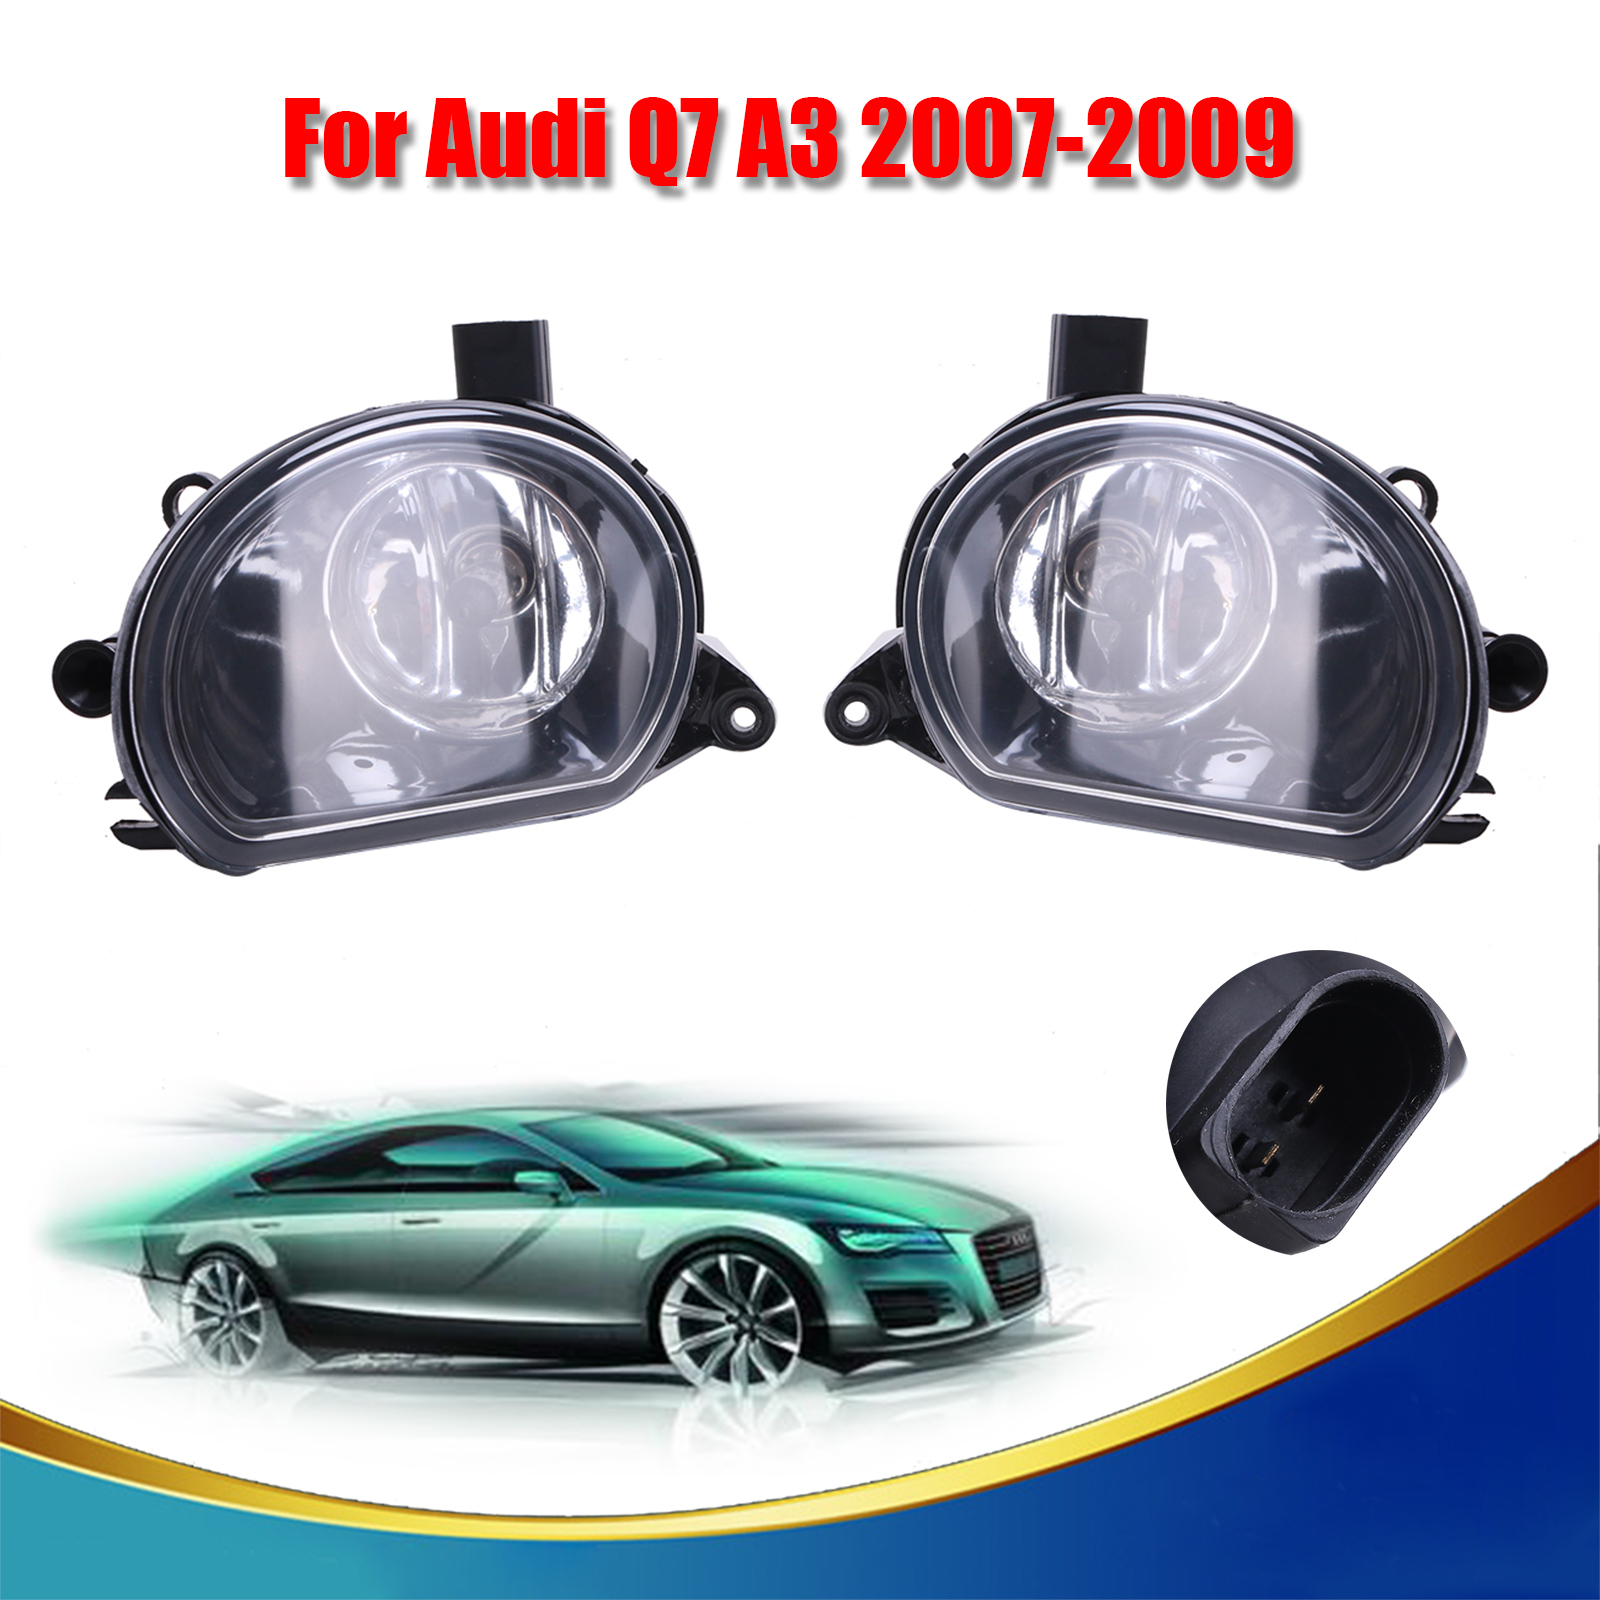 1 Pair Car Accessory Front  Fog Lights Lamp  With H7 Bulbs For AUDI Q7 A3 2007 2008 2009 OEM 8P0941699 + 8P0941700 // right side front fog light headlight for audi a3 s3 s line a4 b7 2004 2005 2006 2007 2008 oem 8e0941700 car accessory p318 r